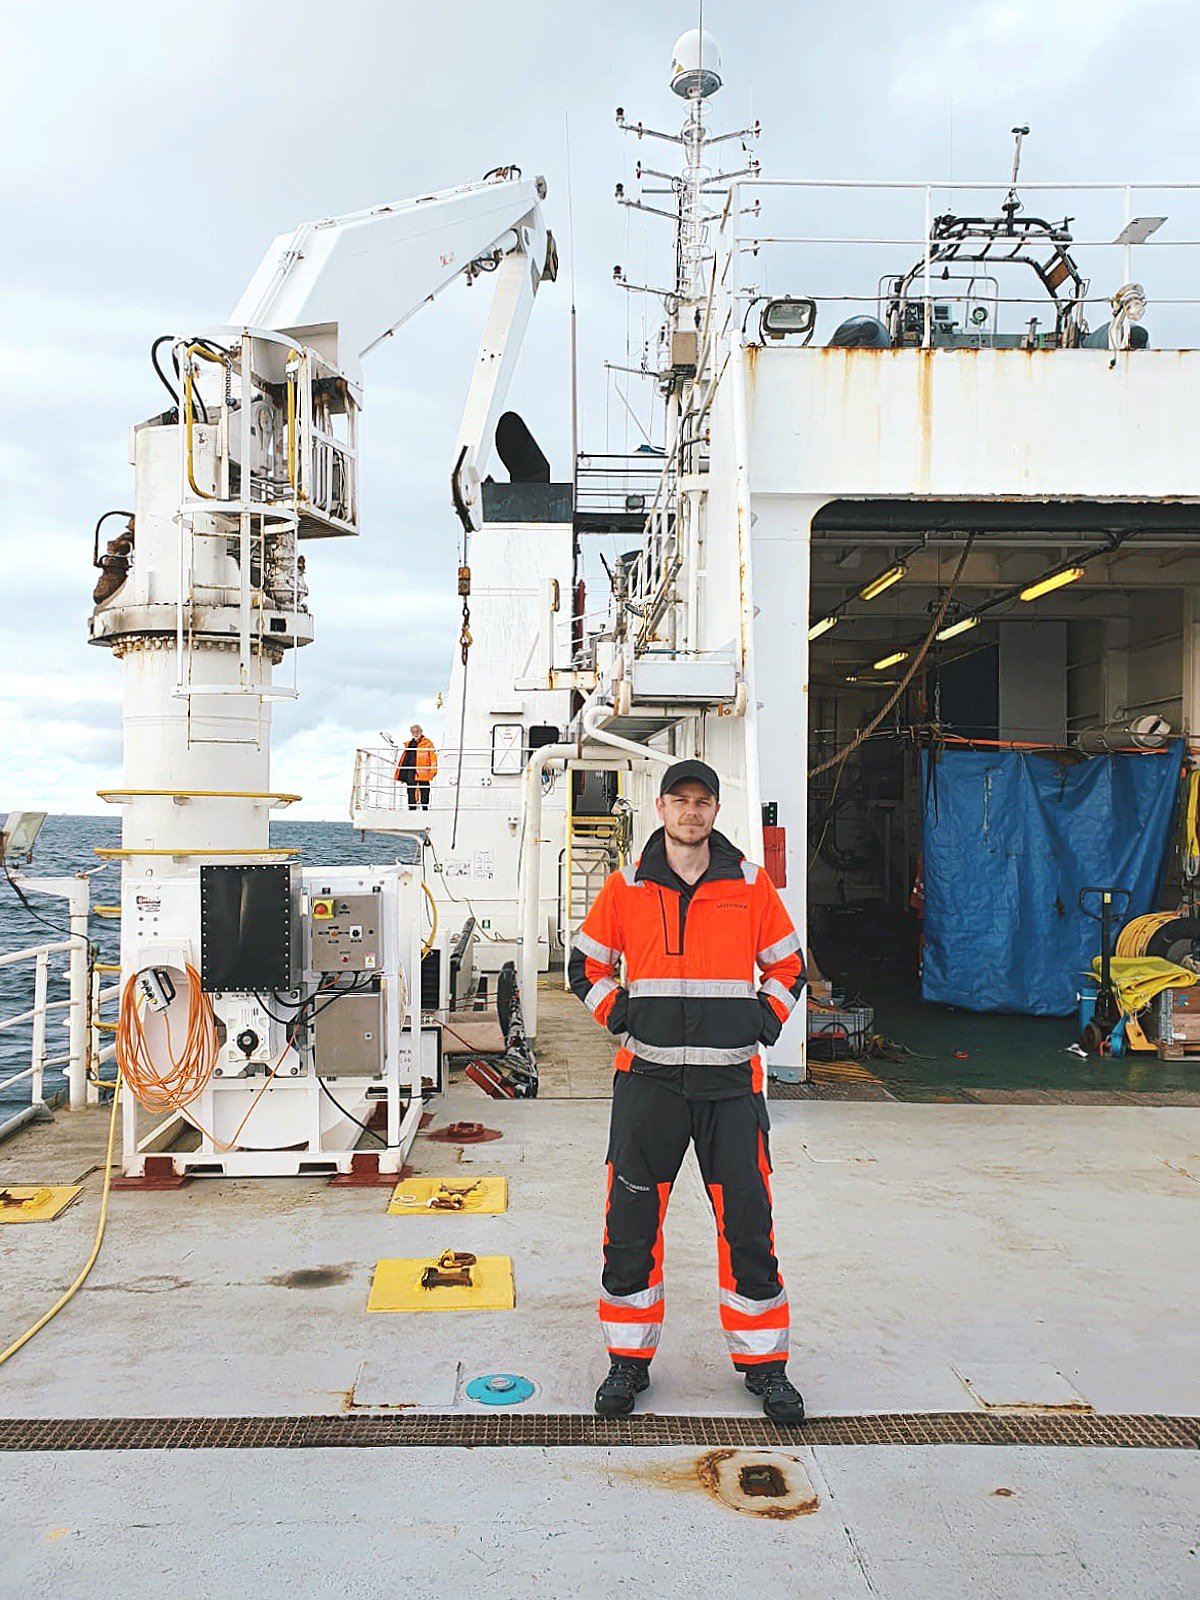 Man in high-vis workwear on a large boat